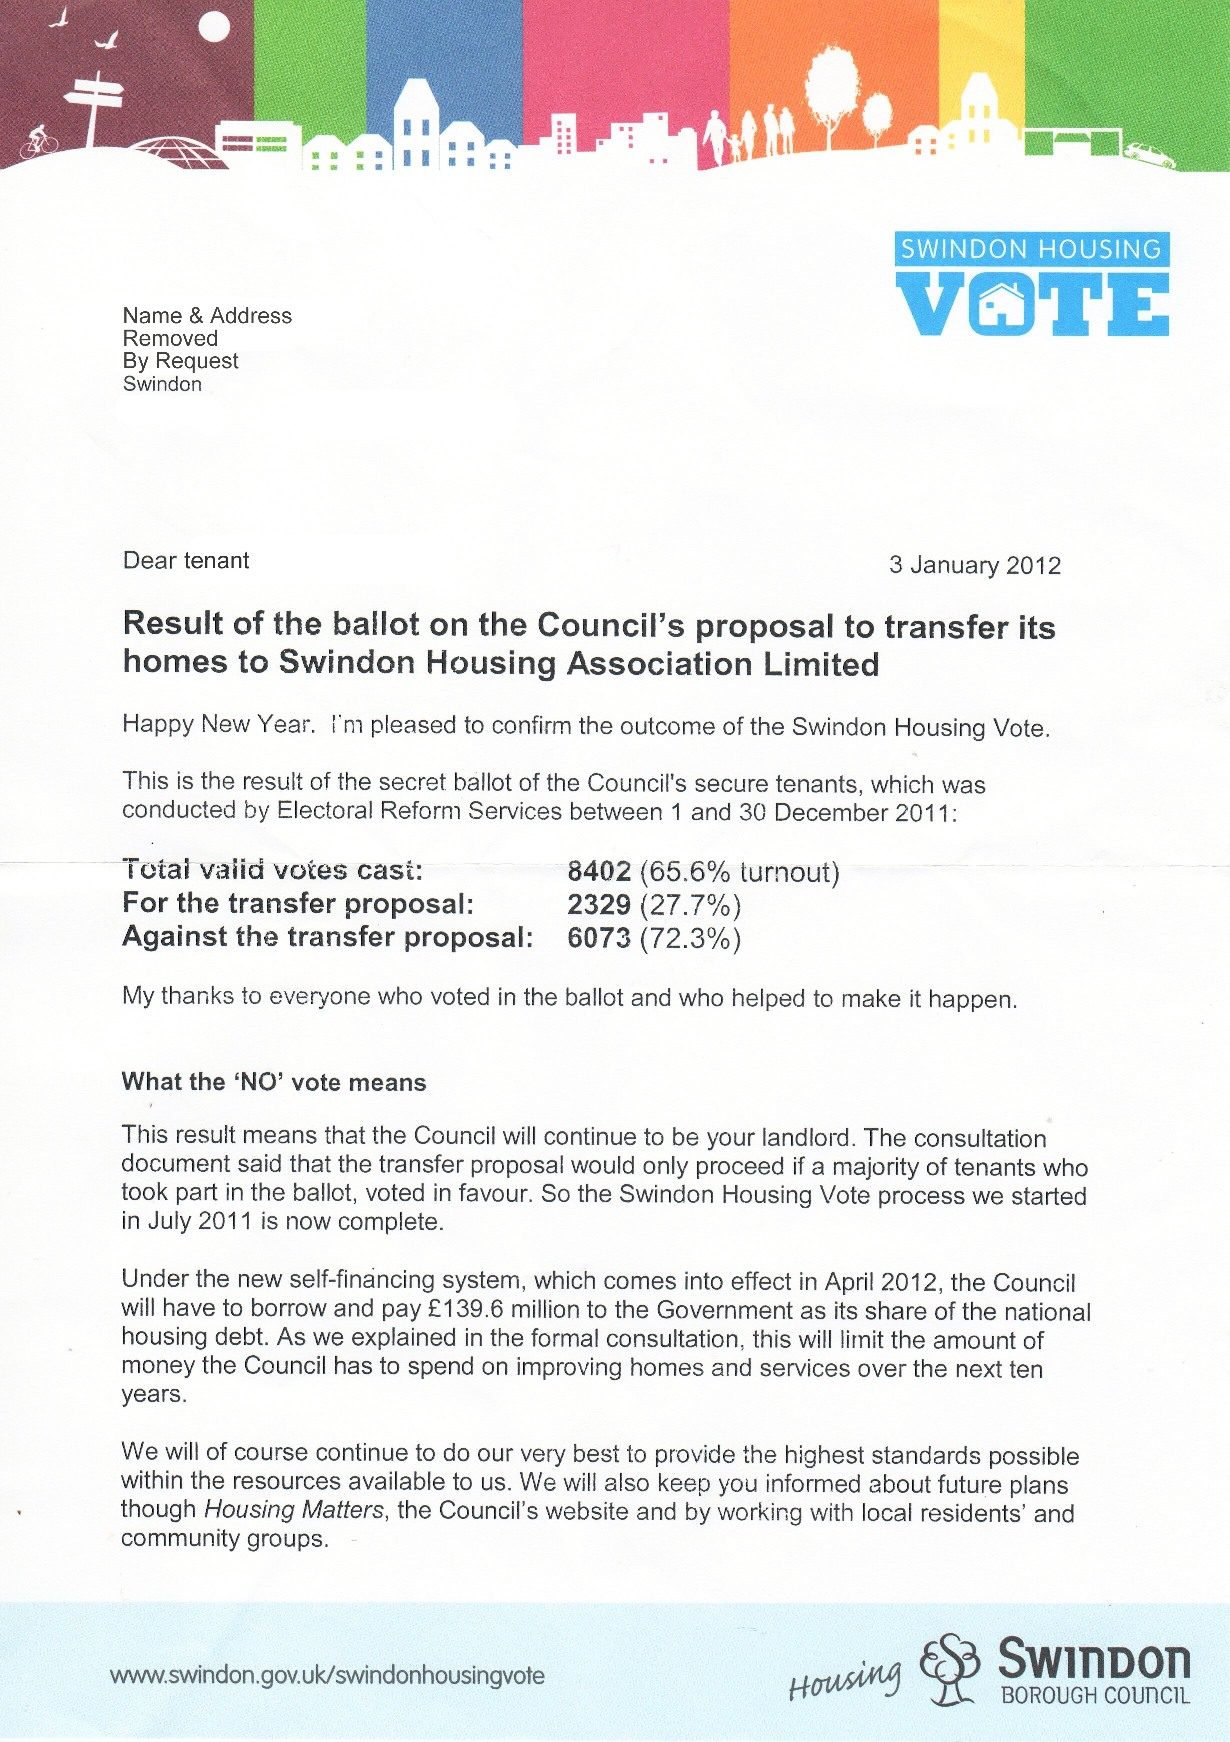 were all aware especially tenants that the official promotion of the housing ballot was intense and sustained the council contacted tenants by post